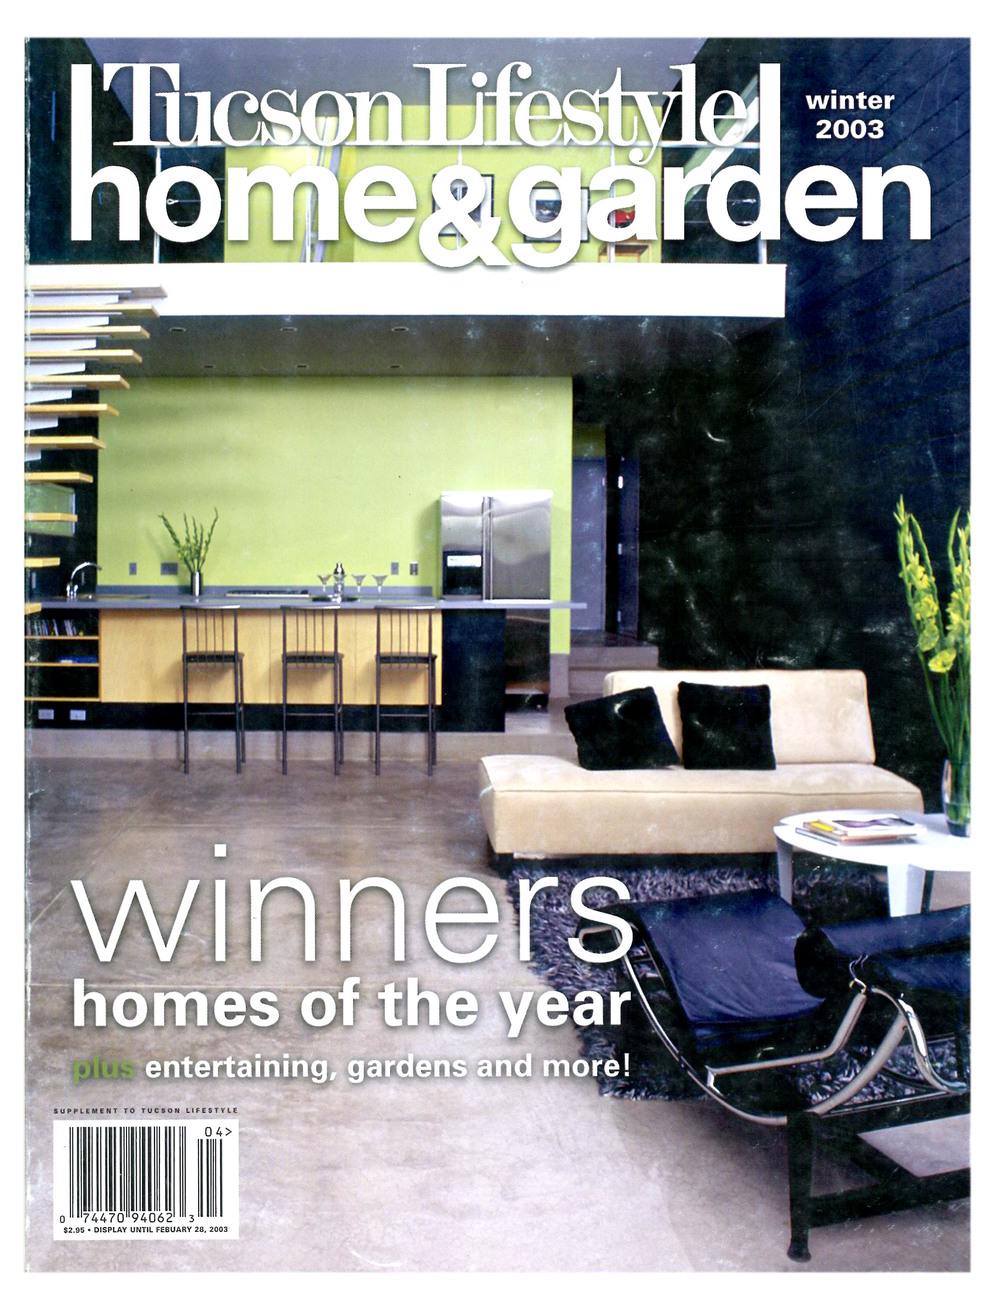 2003_Tucson_Lifestyle_Home+Garden_Cover.jpg